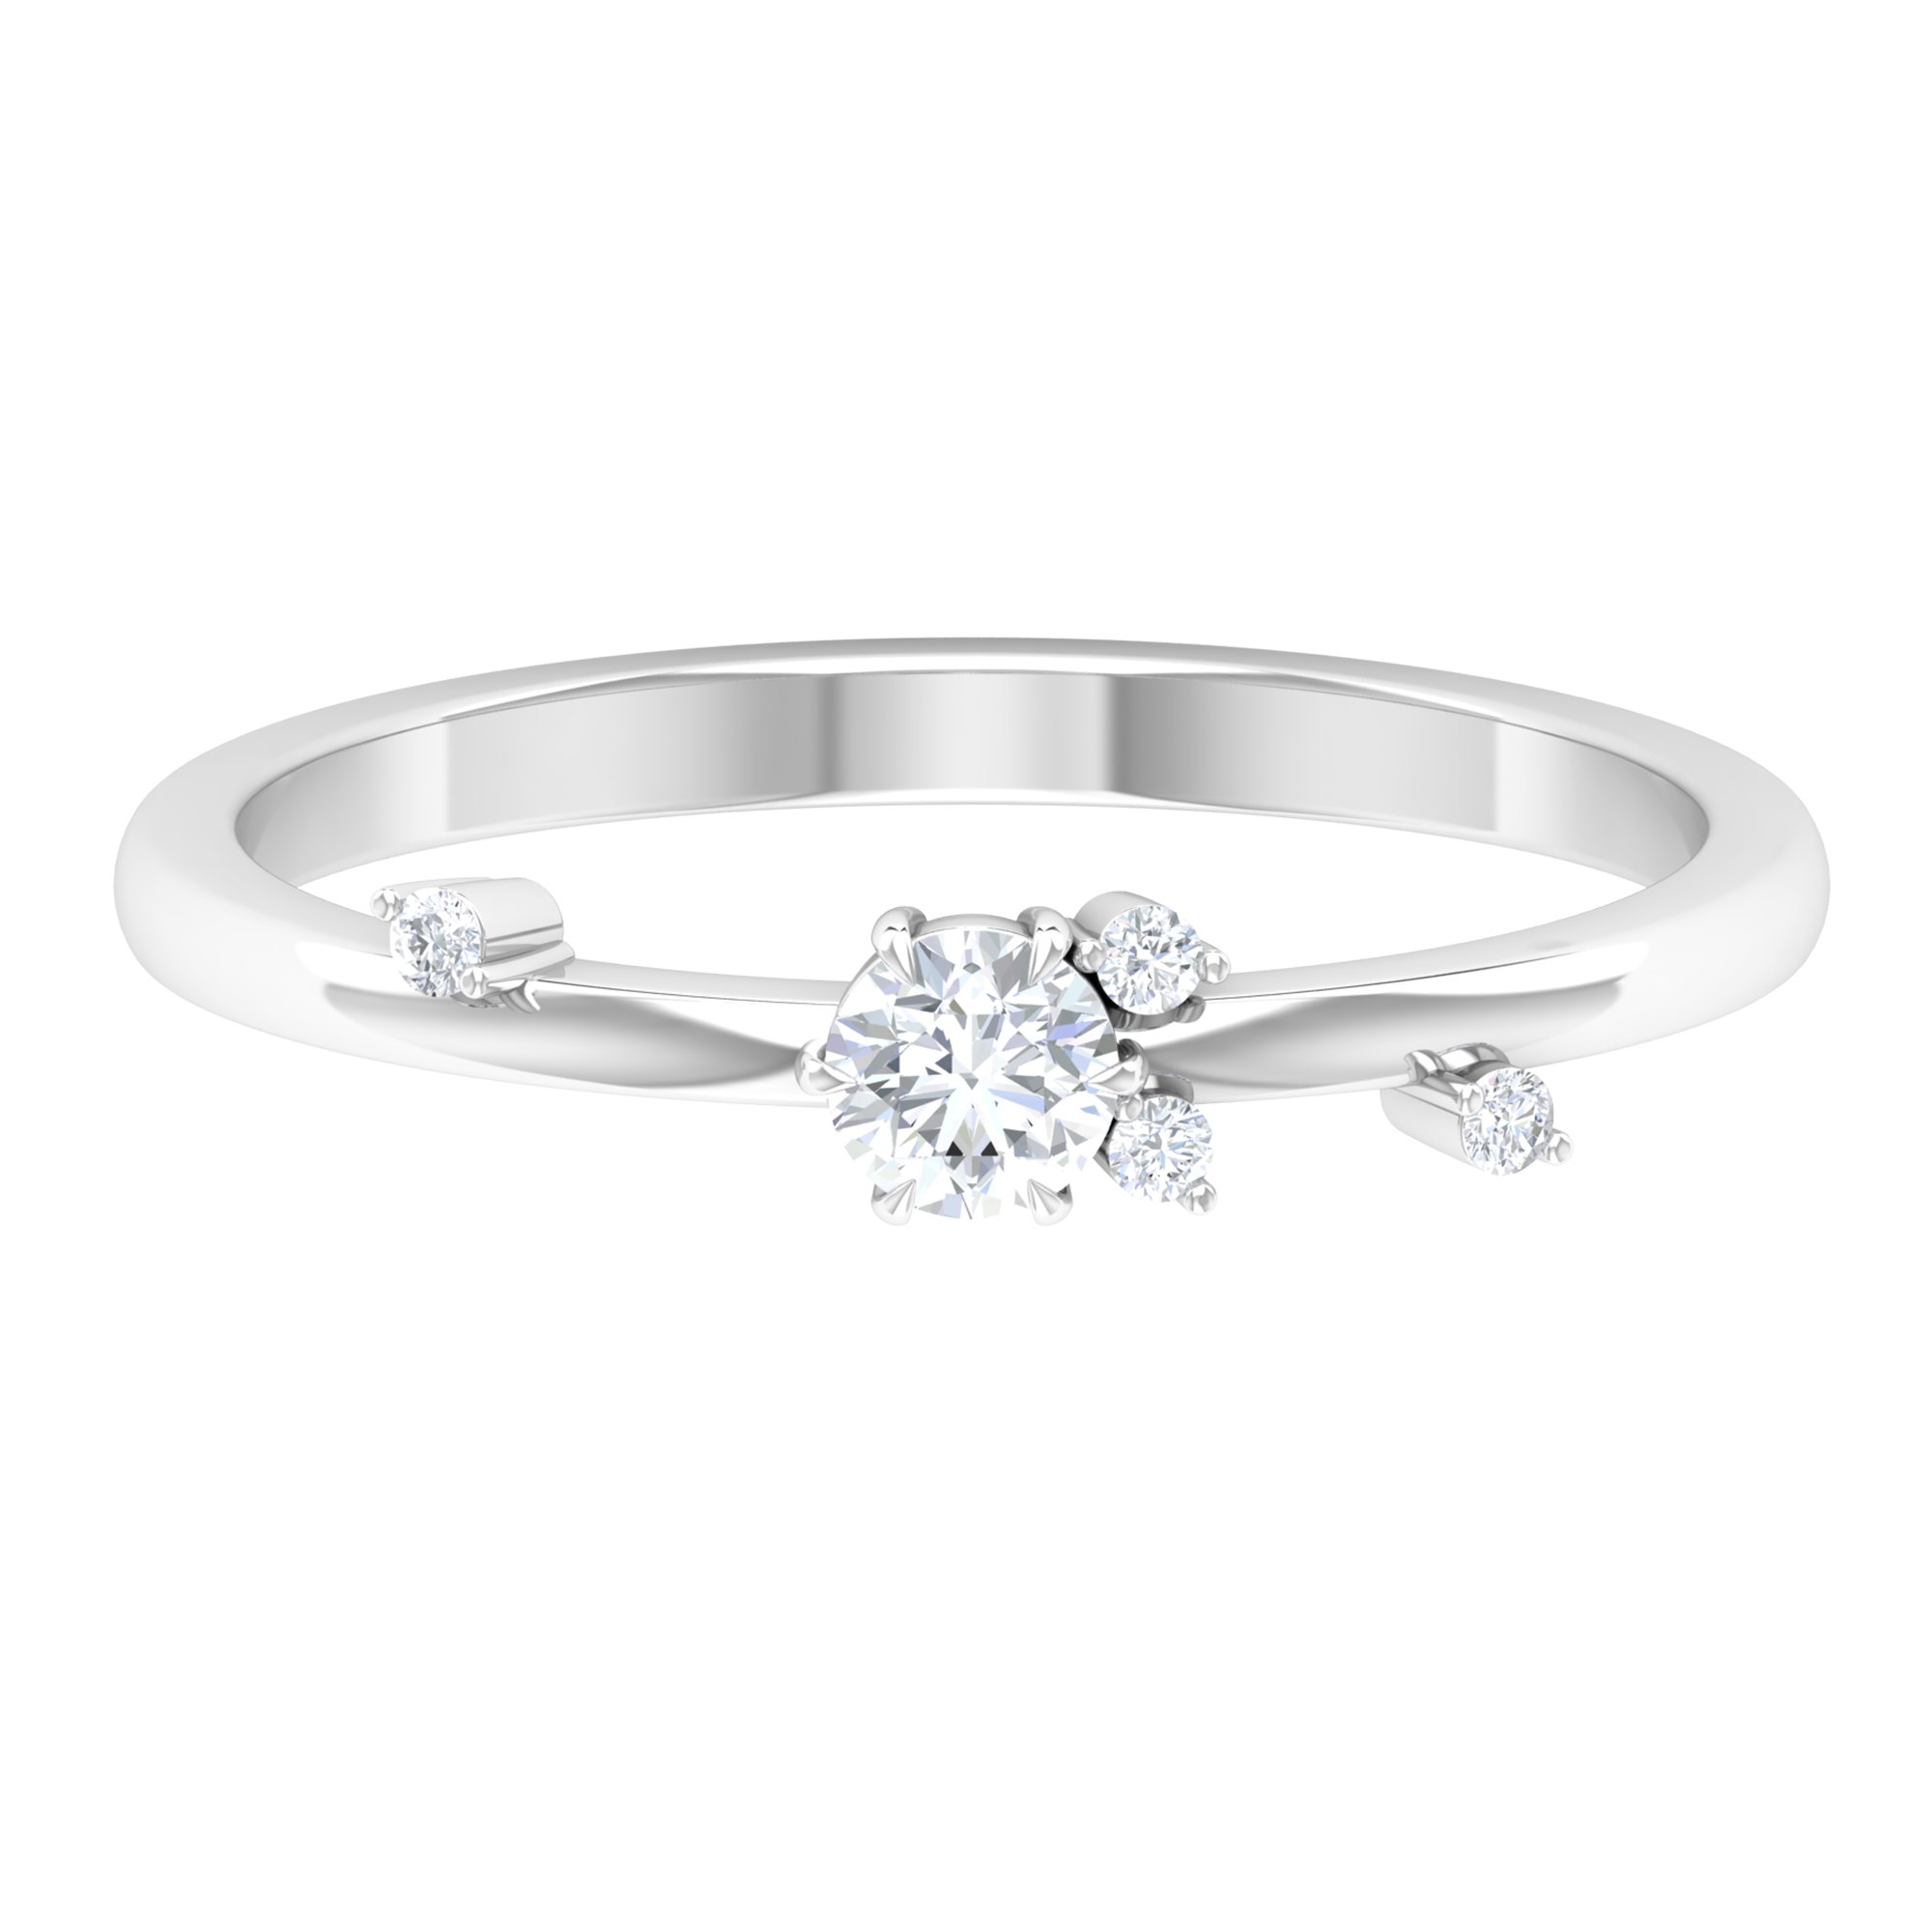 0.25 CT Round Cut Diamond Scatter Stackable Ring in Prong Set